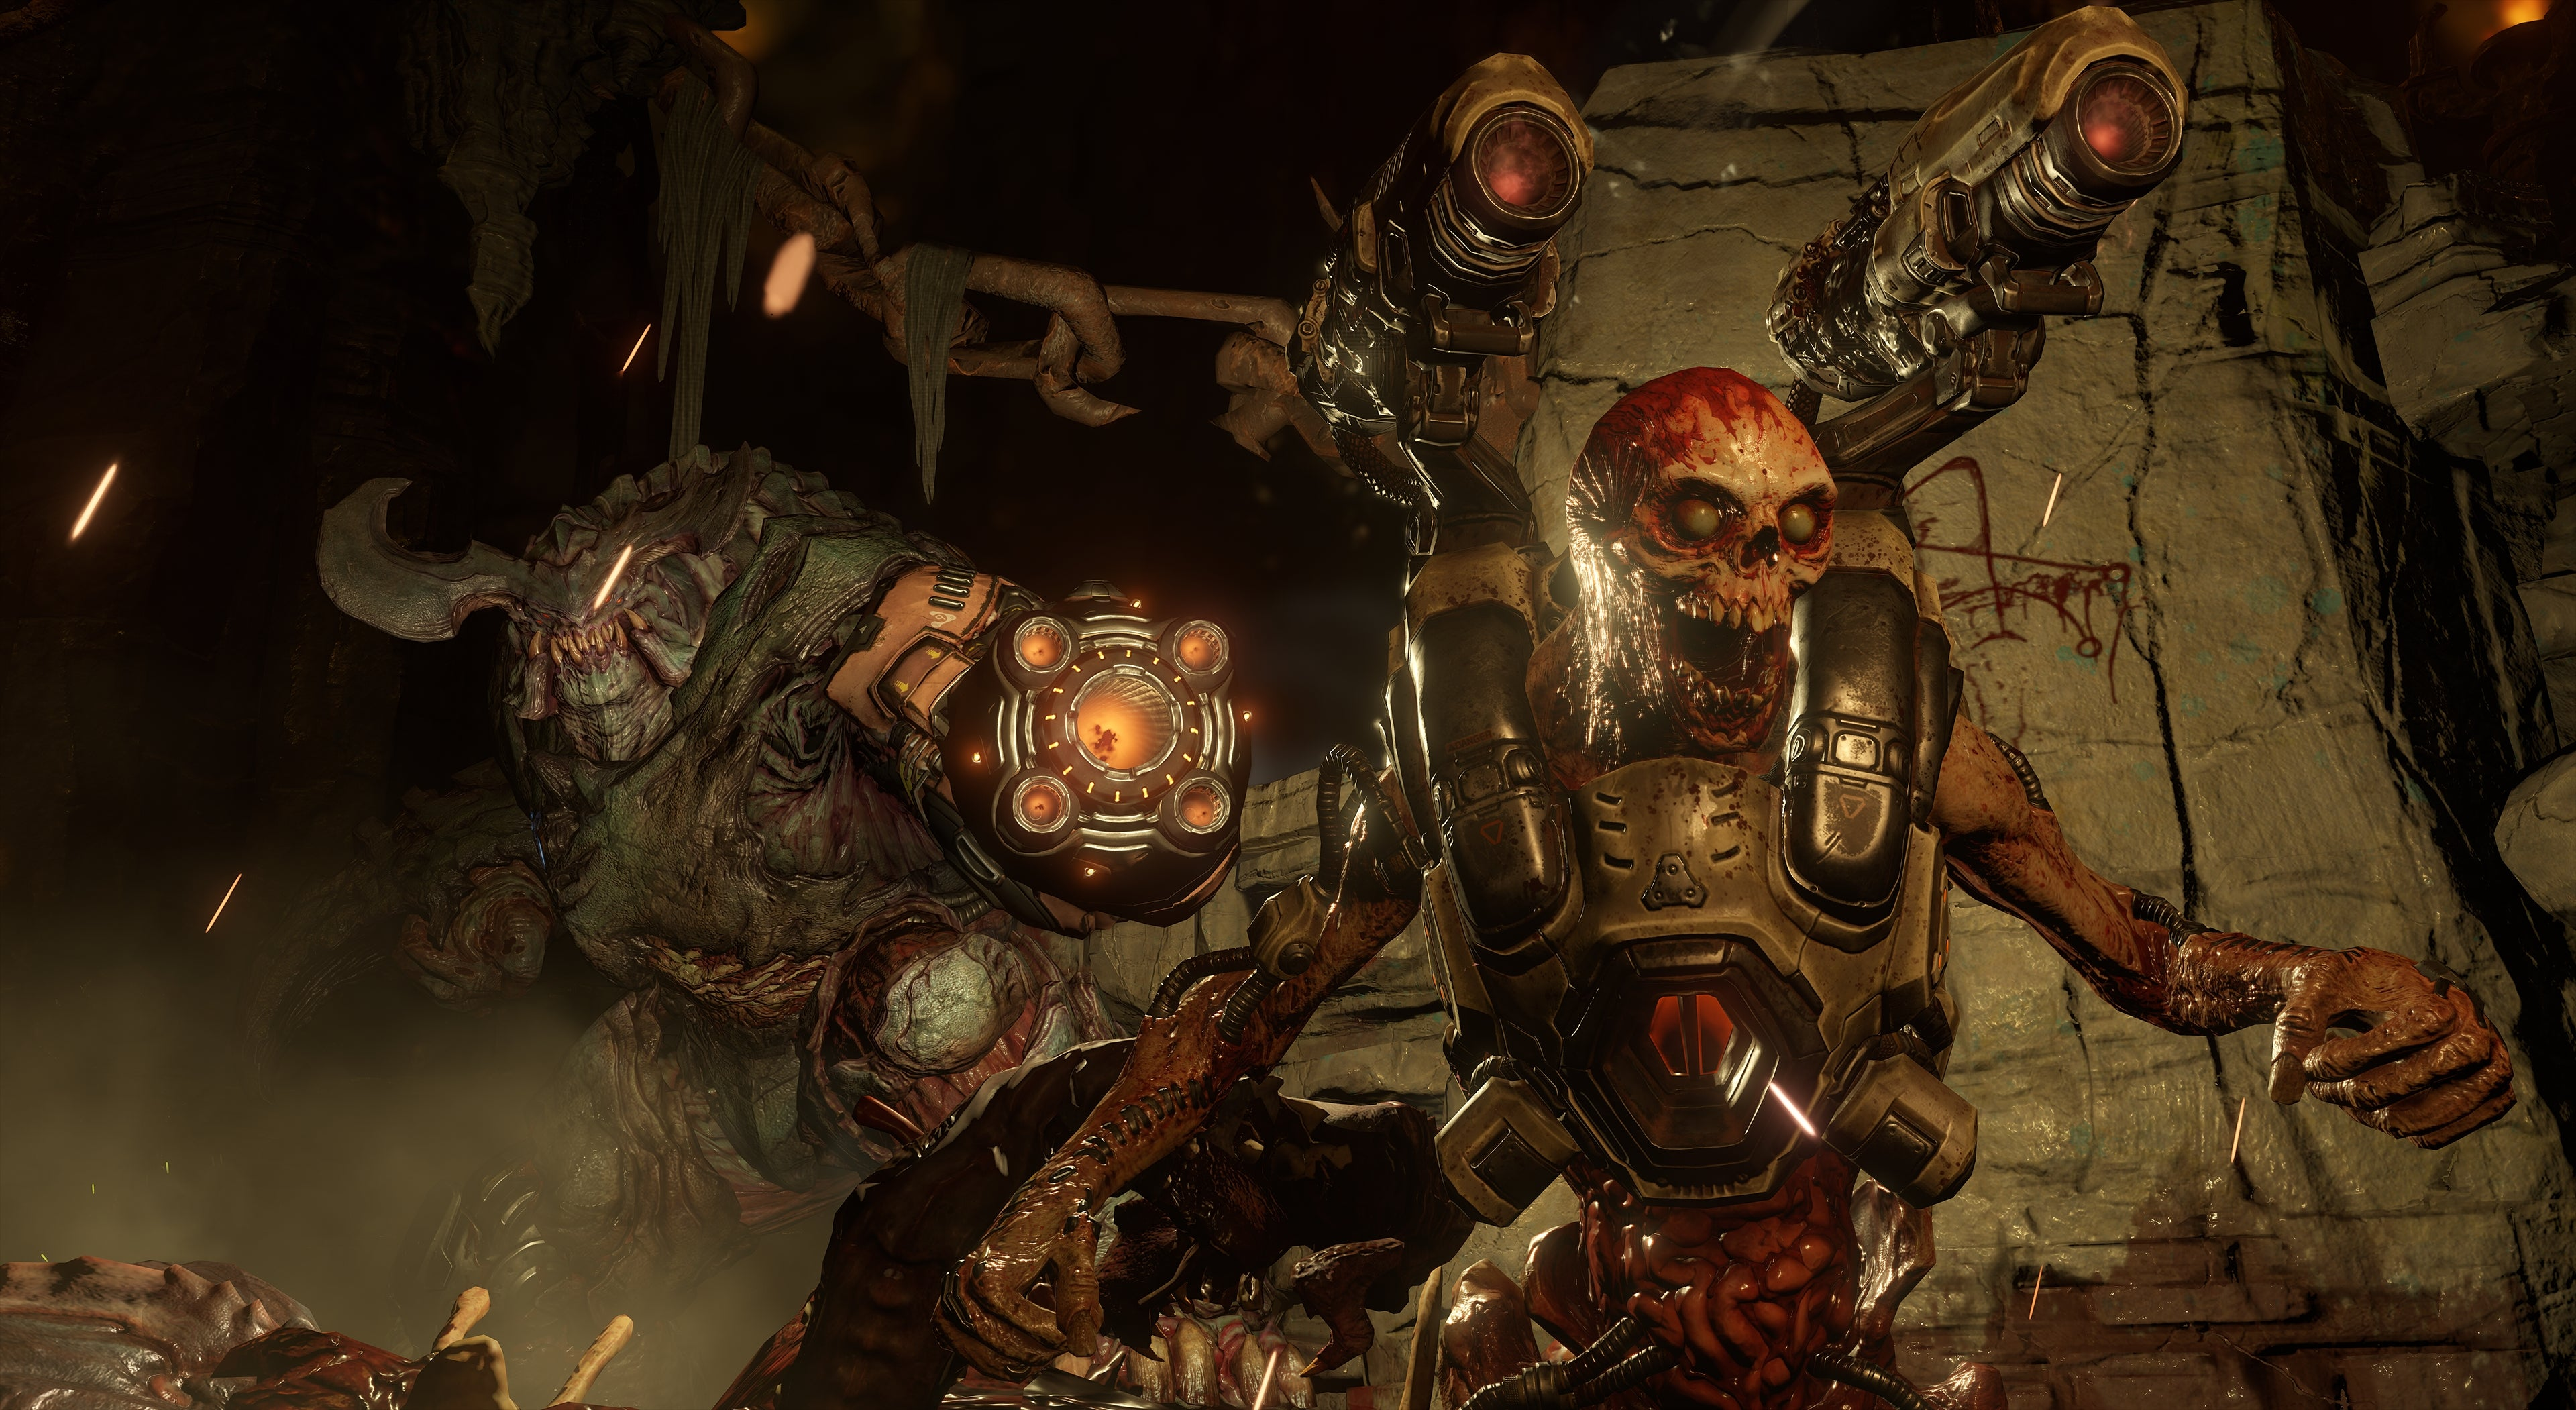 New DOOM Includes Awesome Secret For Old School Fans